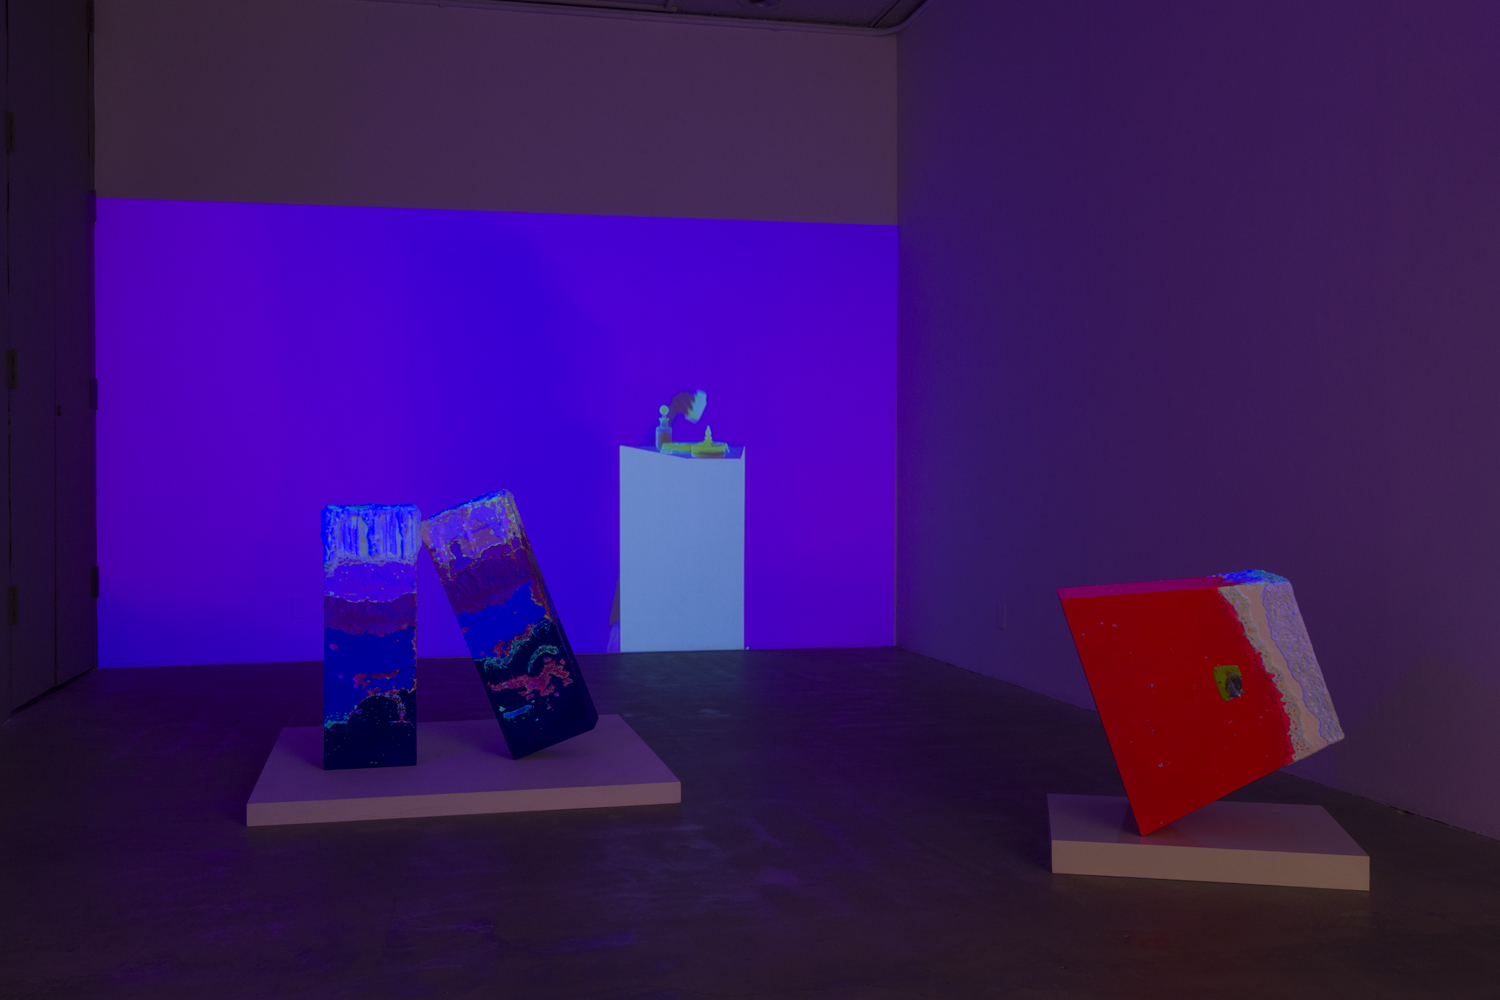 In this artwork installation by the artist Lena Daly, a flourescent, neon colored video projection is displayed on a wall. This video projection still features an image of a small sculptural work on a pedestal.